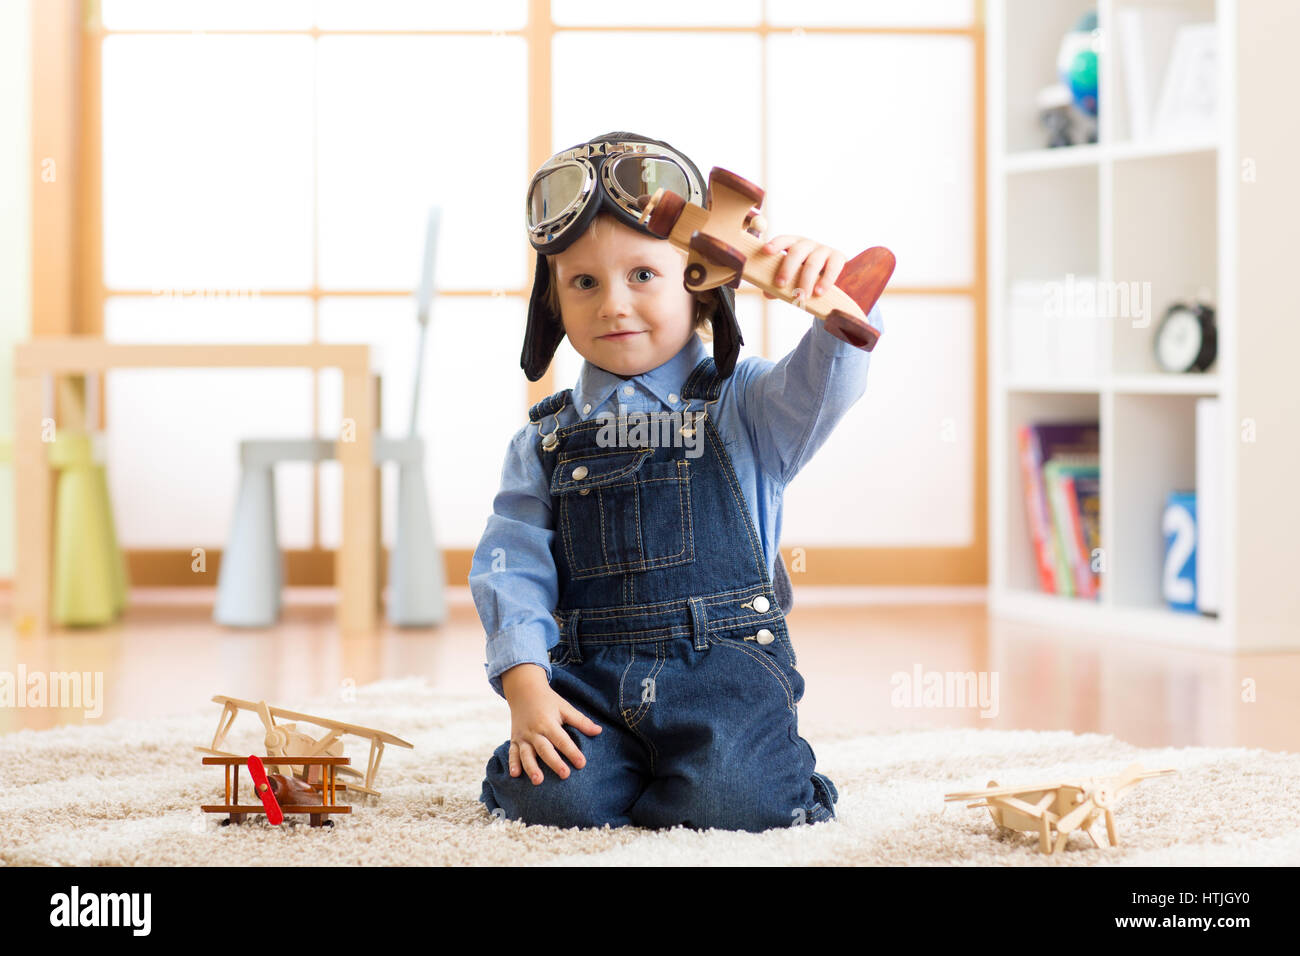 Enfant prétendant être aviateur. Kid Playing with toy airplanes at home Photo Stock